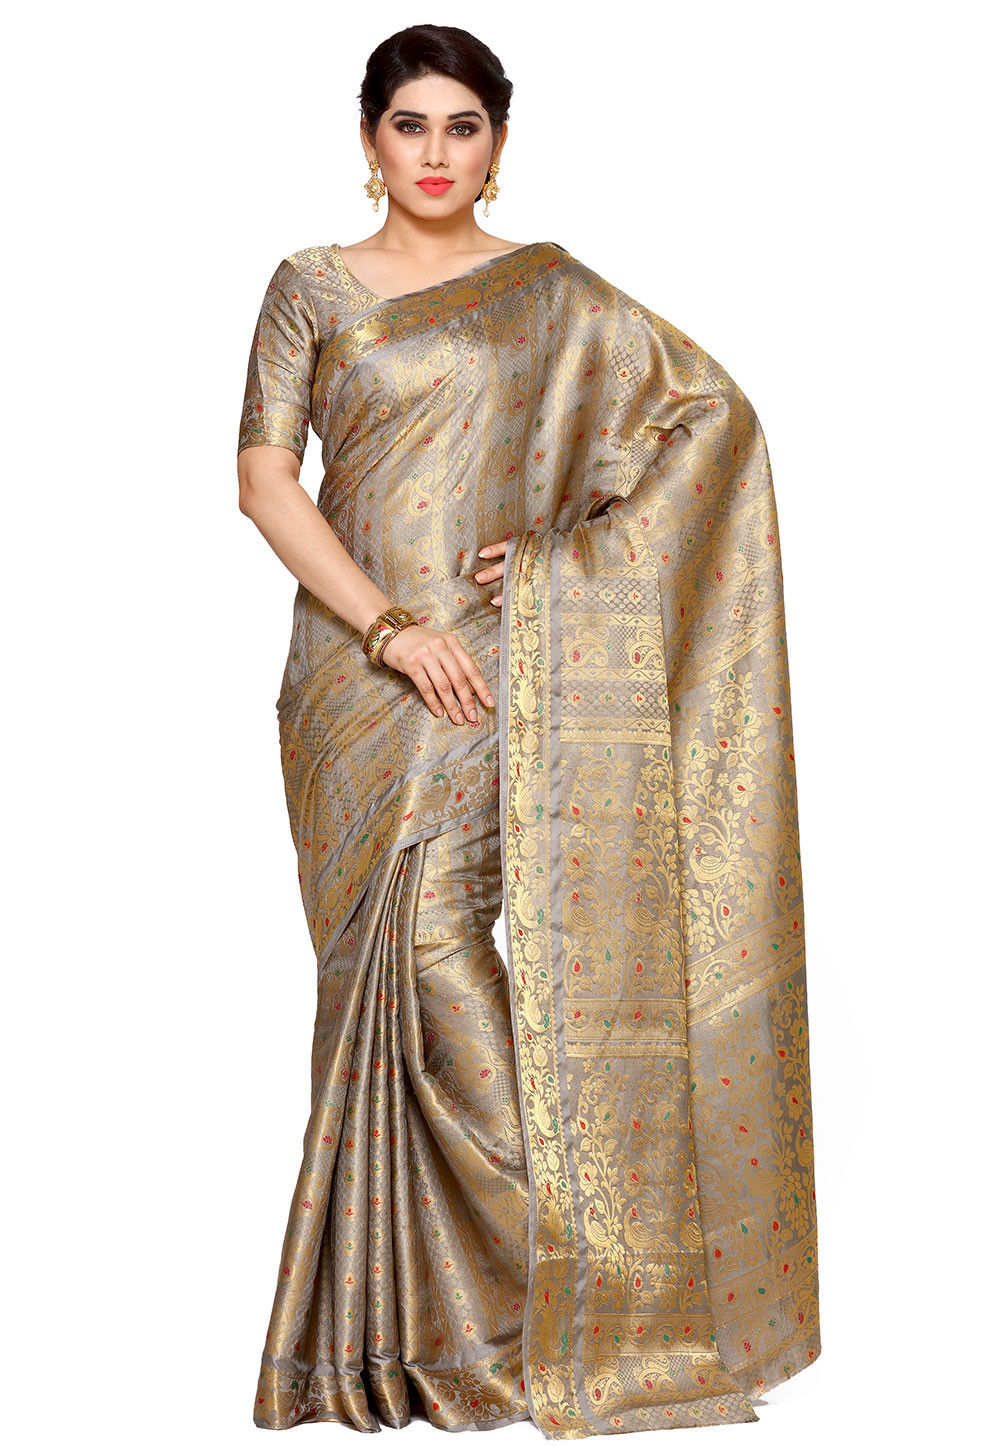 a798902c91cf0 Woven Bangalore Silk Saree in Grey and Golden   SNGA293